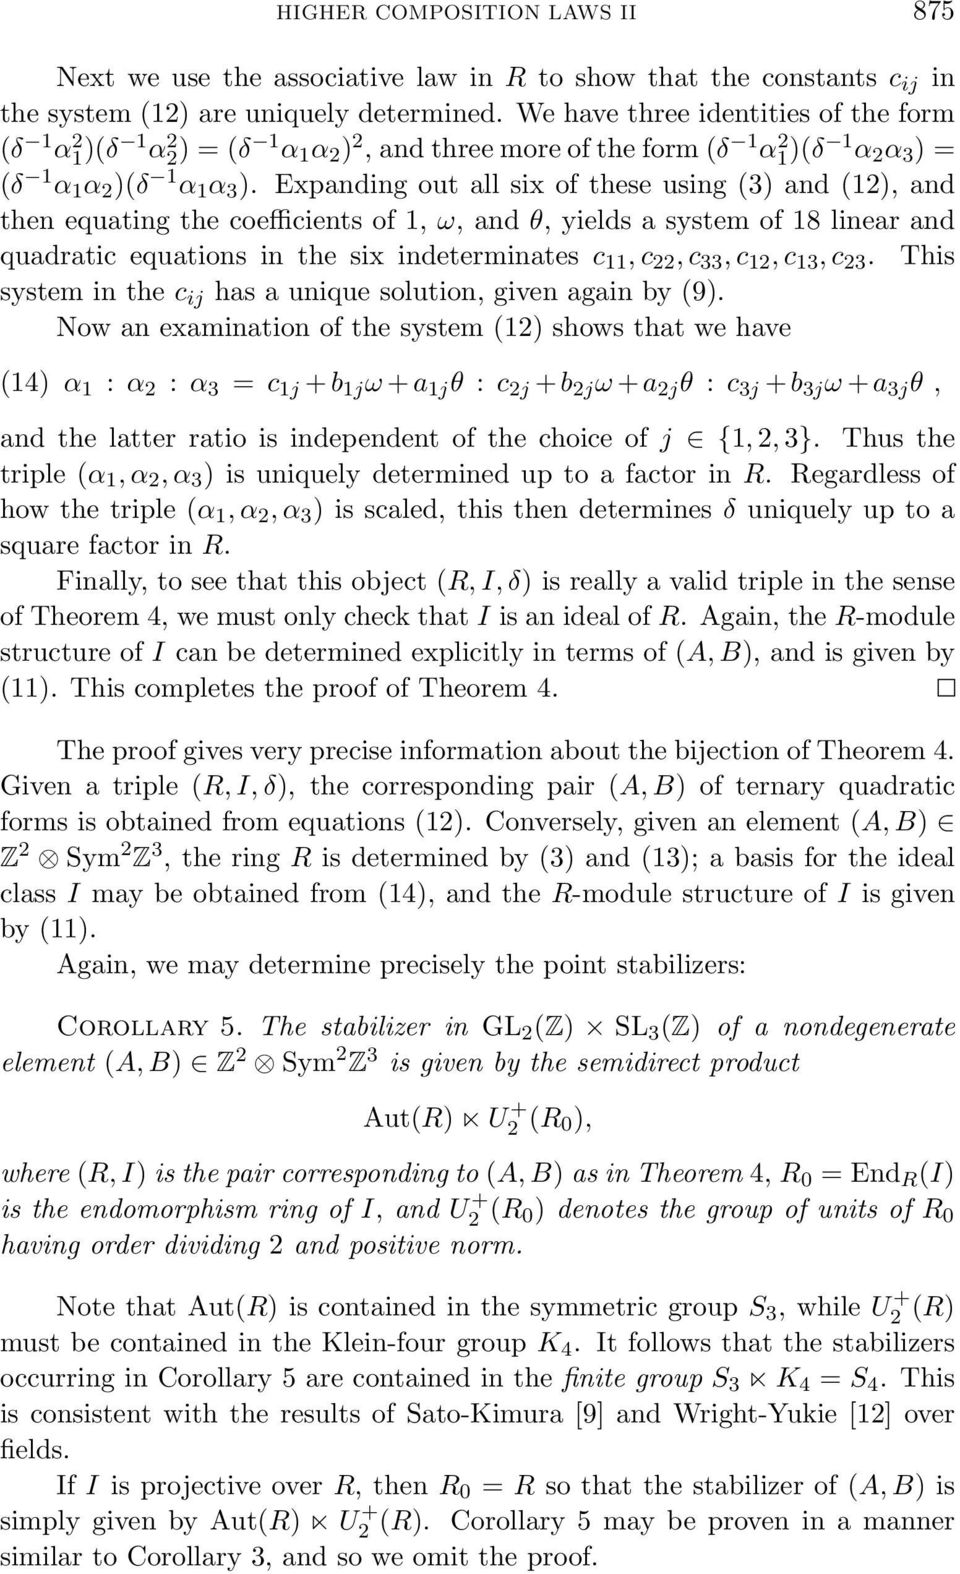 Expanding out all six of these using (3) and (12), and then equating the coefficients of 1, ω, and θ, yields a system of 18 linear and quadratic equations in the six indeterminates c 11,c 22,c 33,c